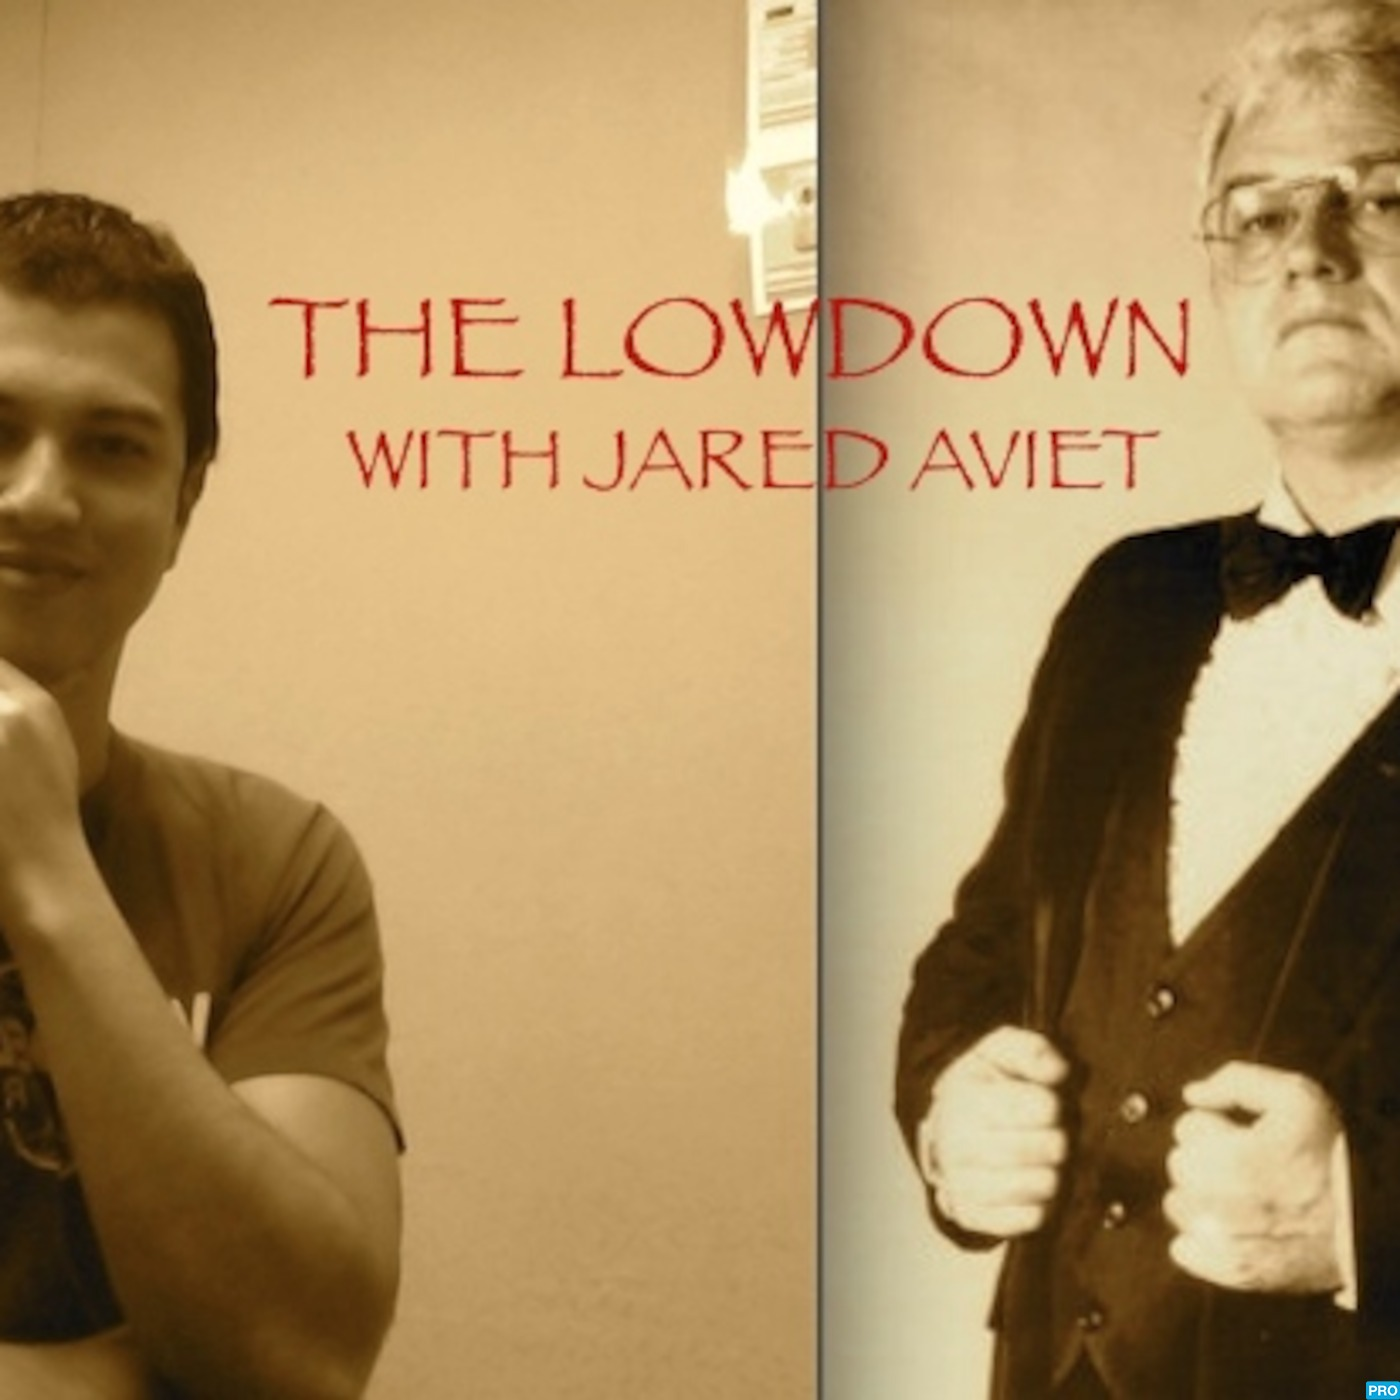 The Lowdown With Jared Aviet